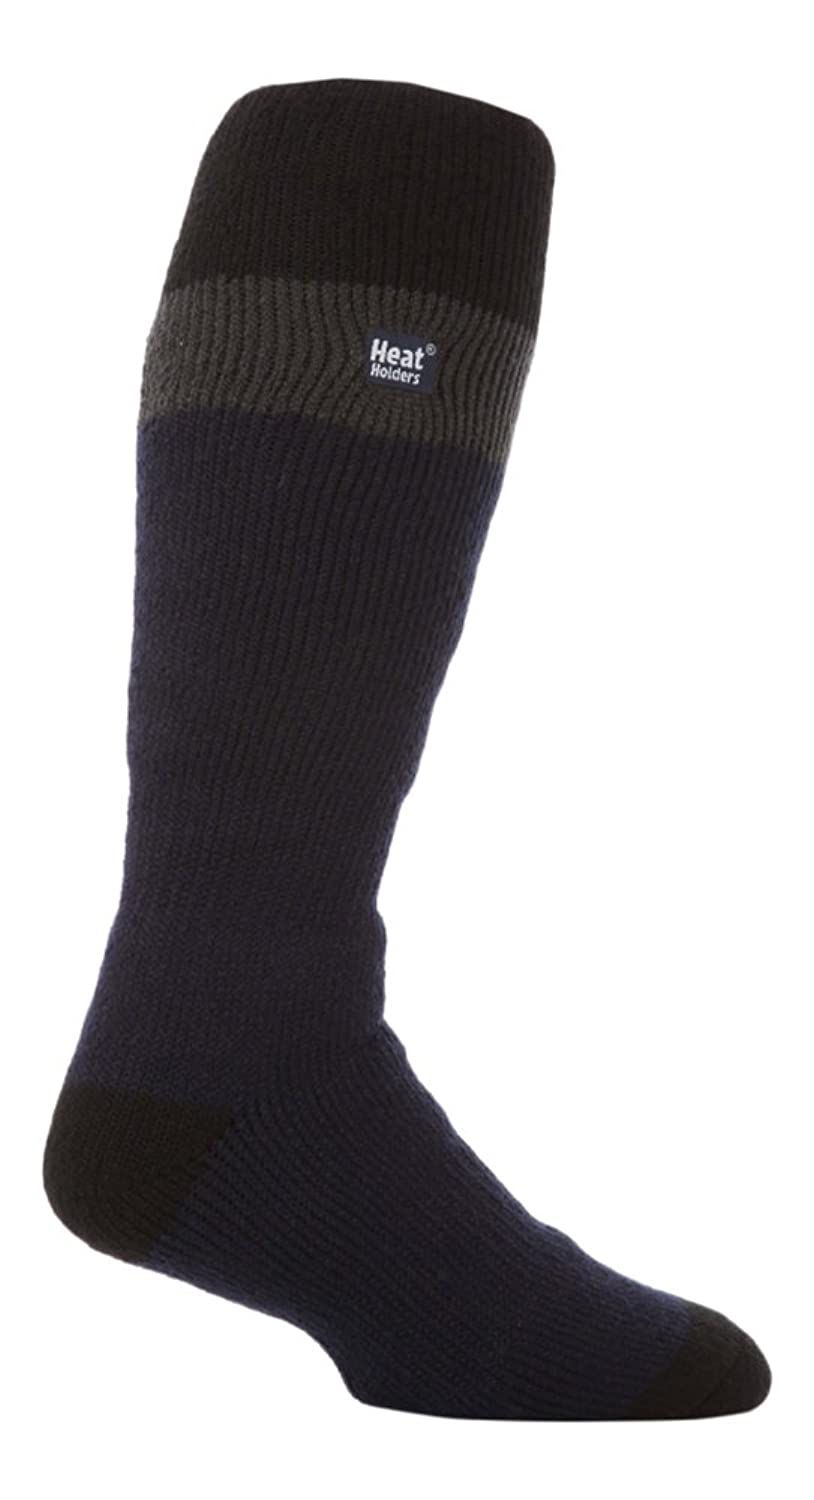 Heat Holders socks - Herren lange thermische Skisocken 39-45 Marineblau (Navy/Grey)